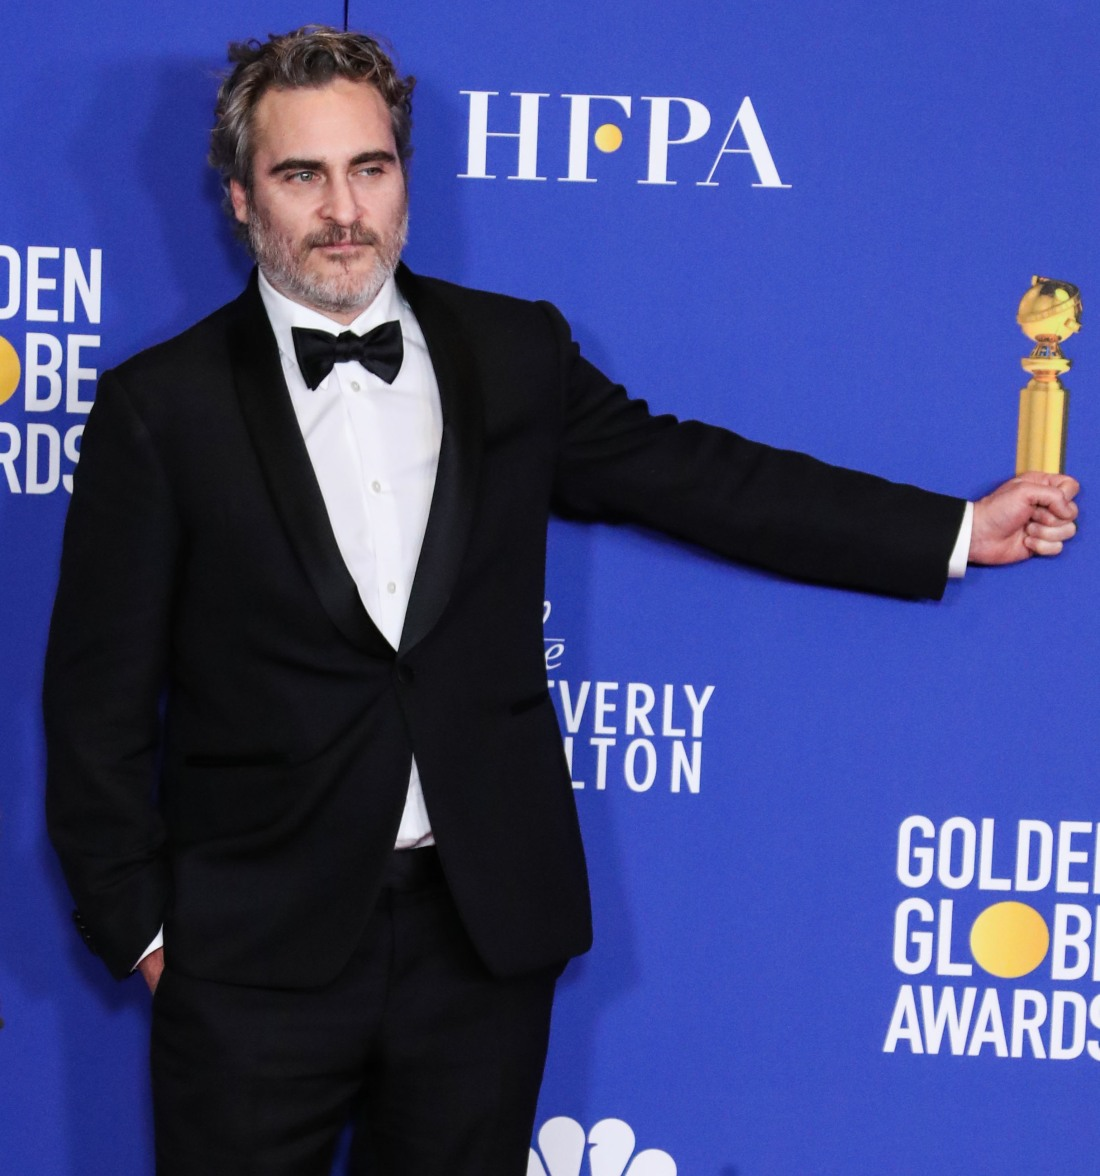 Joaquin Phoenix poses in the press room at the 77th Annual Golden Globe Awards held at The Beverly Hilton Hotel on January 5, 2020 in Beverly Hills, Los Angeles, California, United States.